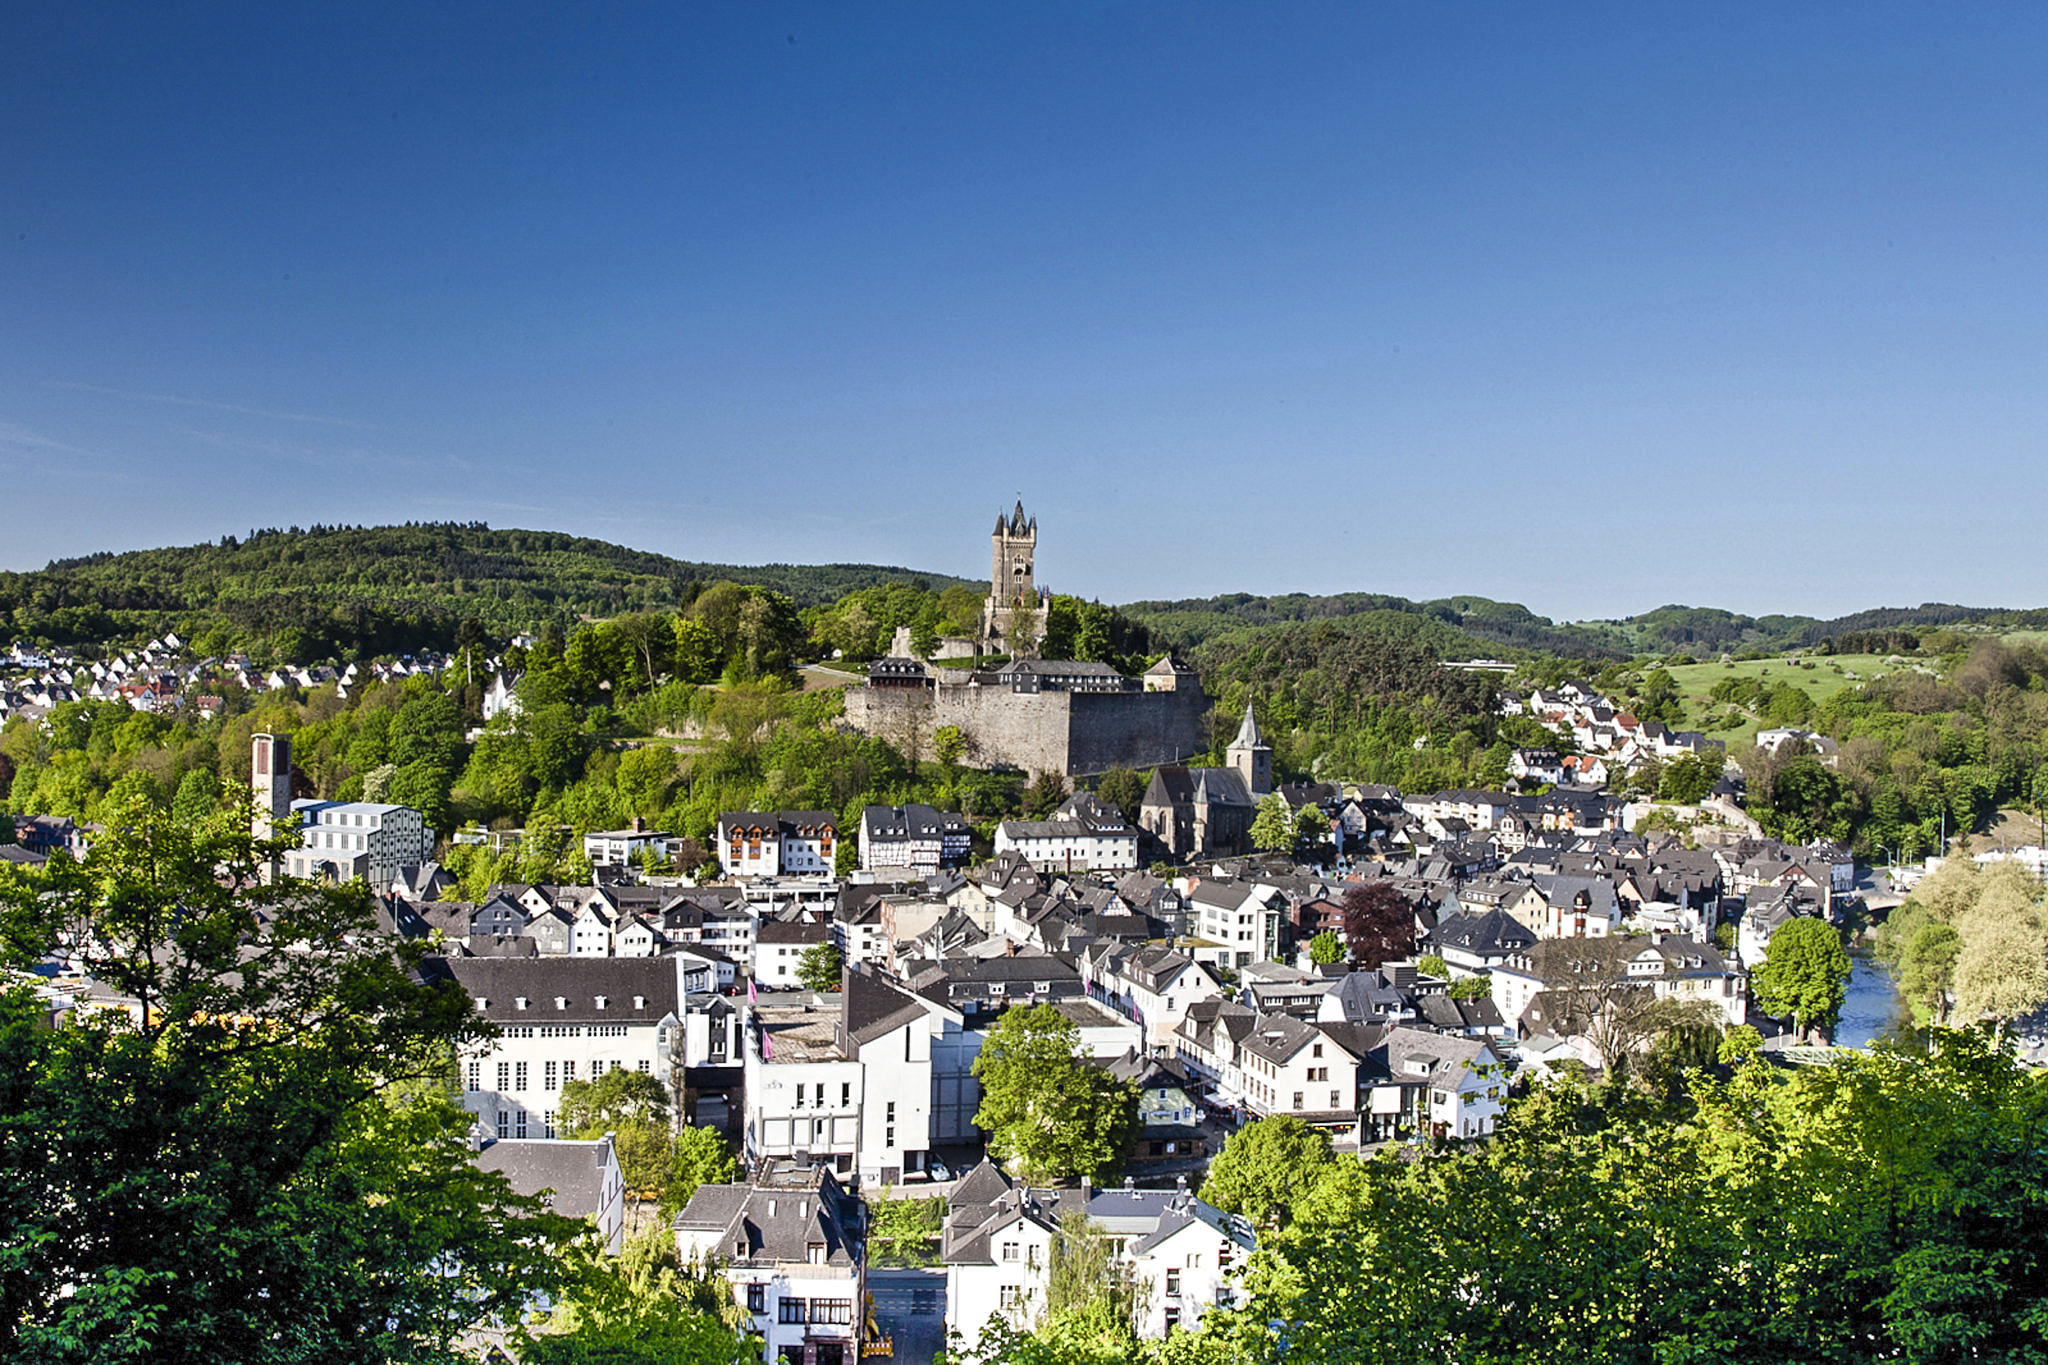 Reference City of Dillenburg - Efficient, paperless file management